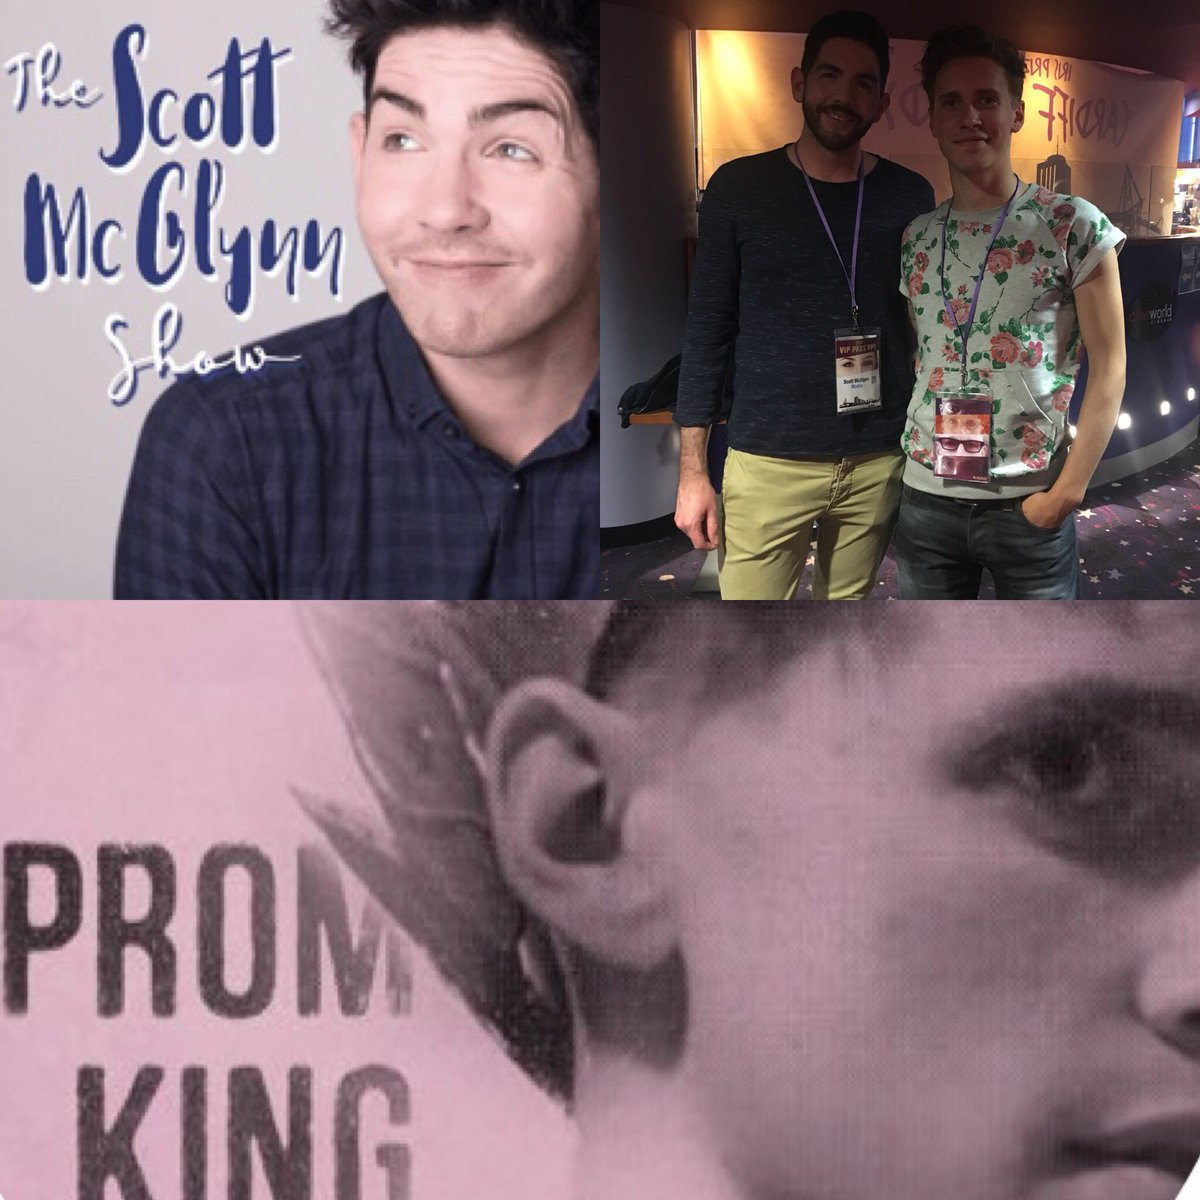 EP39 the awesome @Chris_Schaap the @thePromKing2010 #writer #director &amp; #actor Chats movies / #Iris17 plus lots more  http:// bit.ly/ScottMcShow  &nbsp;  <br>http://pic.twitter.com/SMA721Mylb